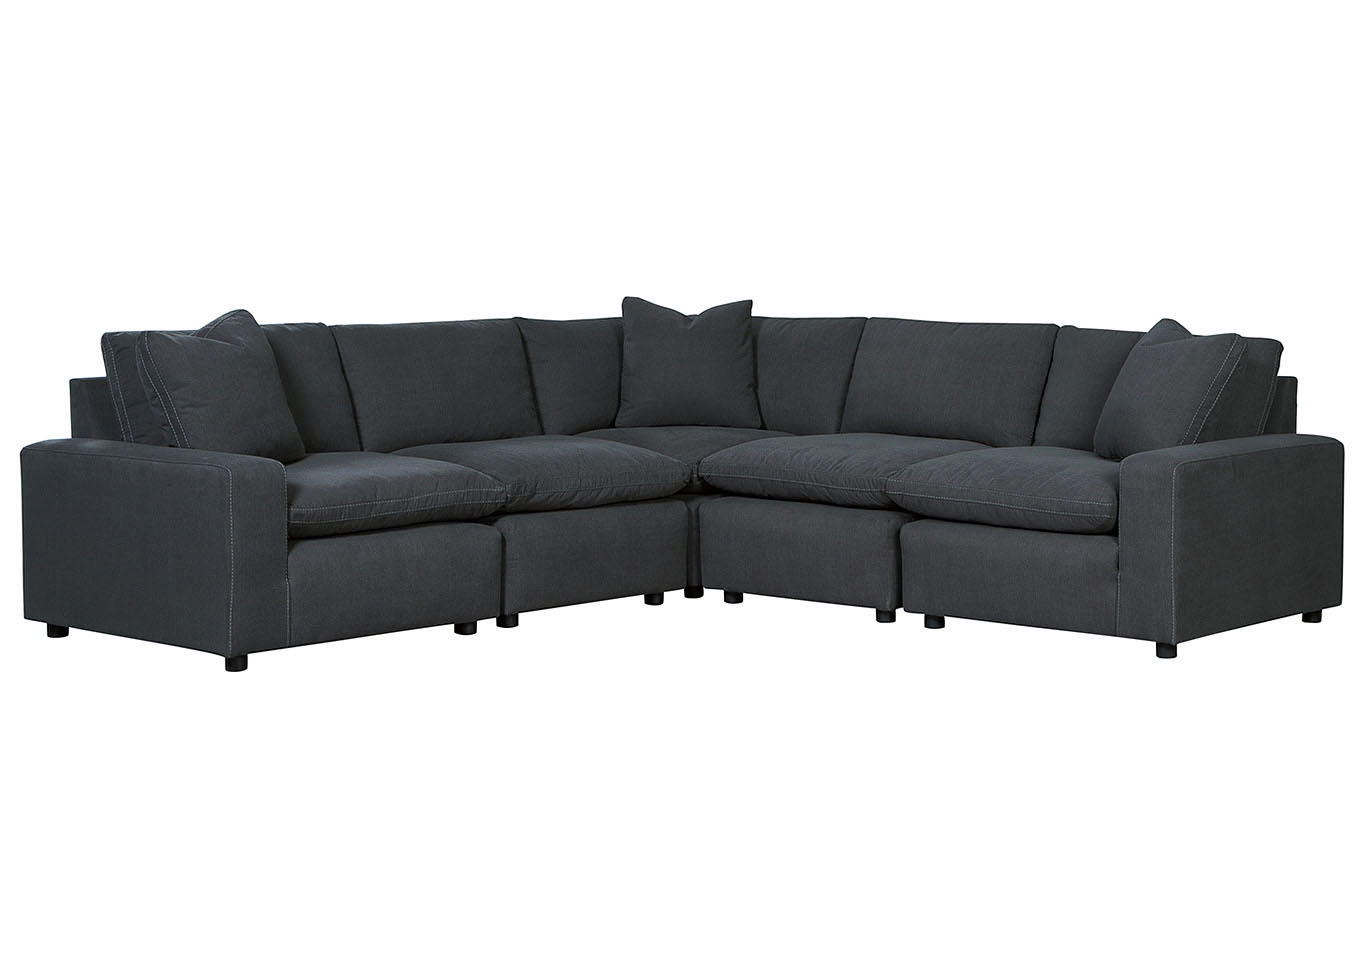 Savesto Charcoal 5 Piece Sectional